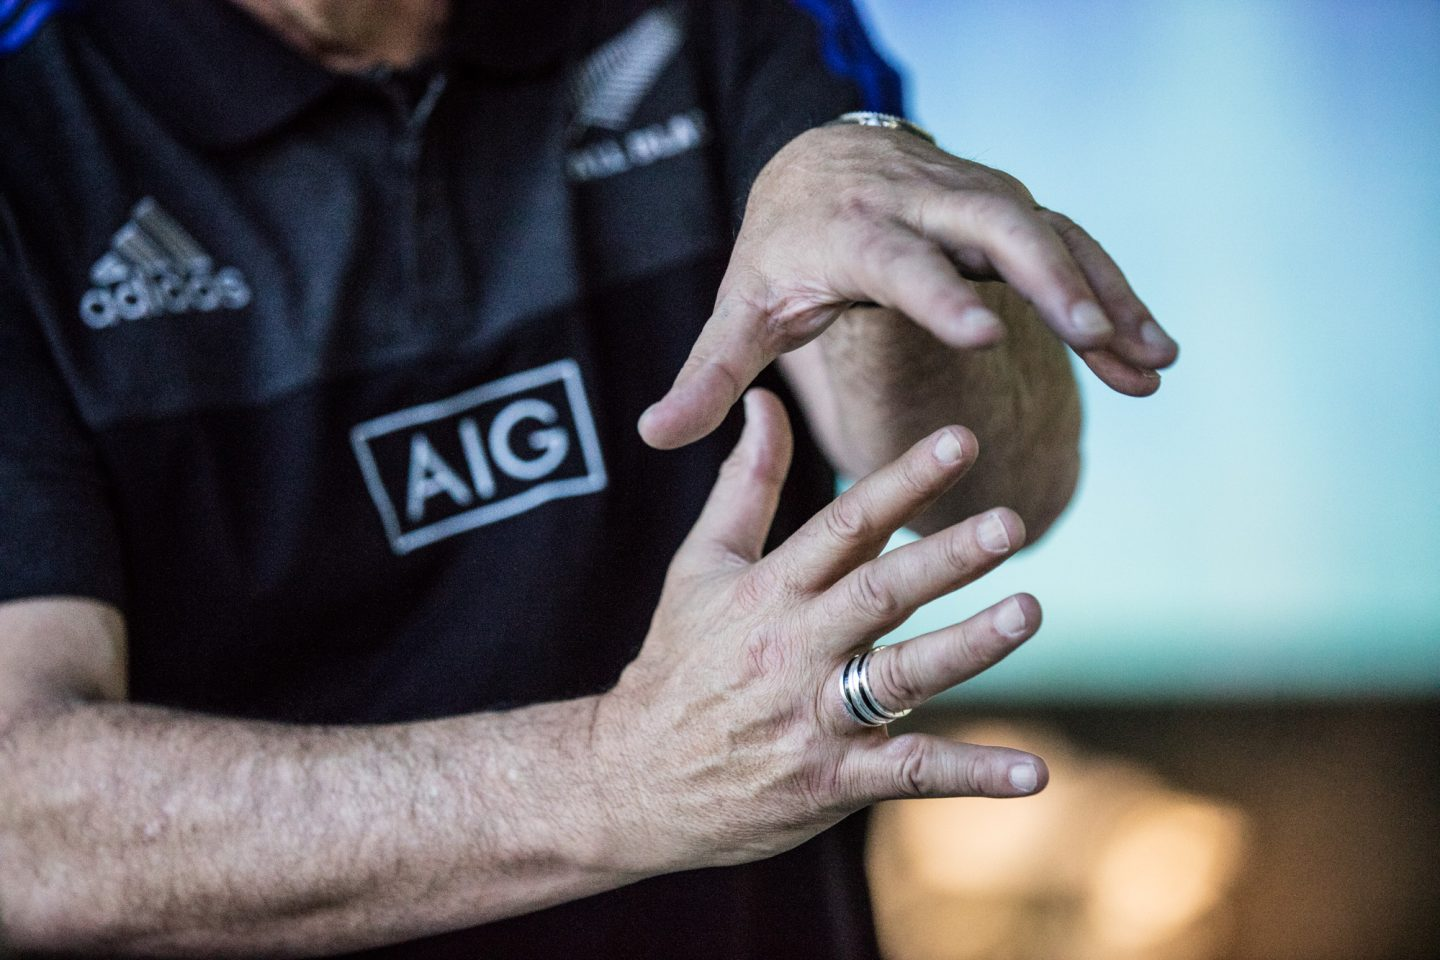 Hands with ring gesturing All Blacks Mental Coach Gilbert Enoka talking Mental Strength Vulnerability Team Spirit